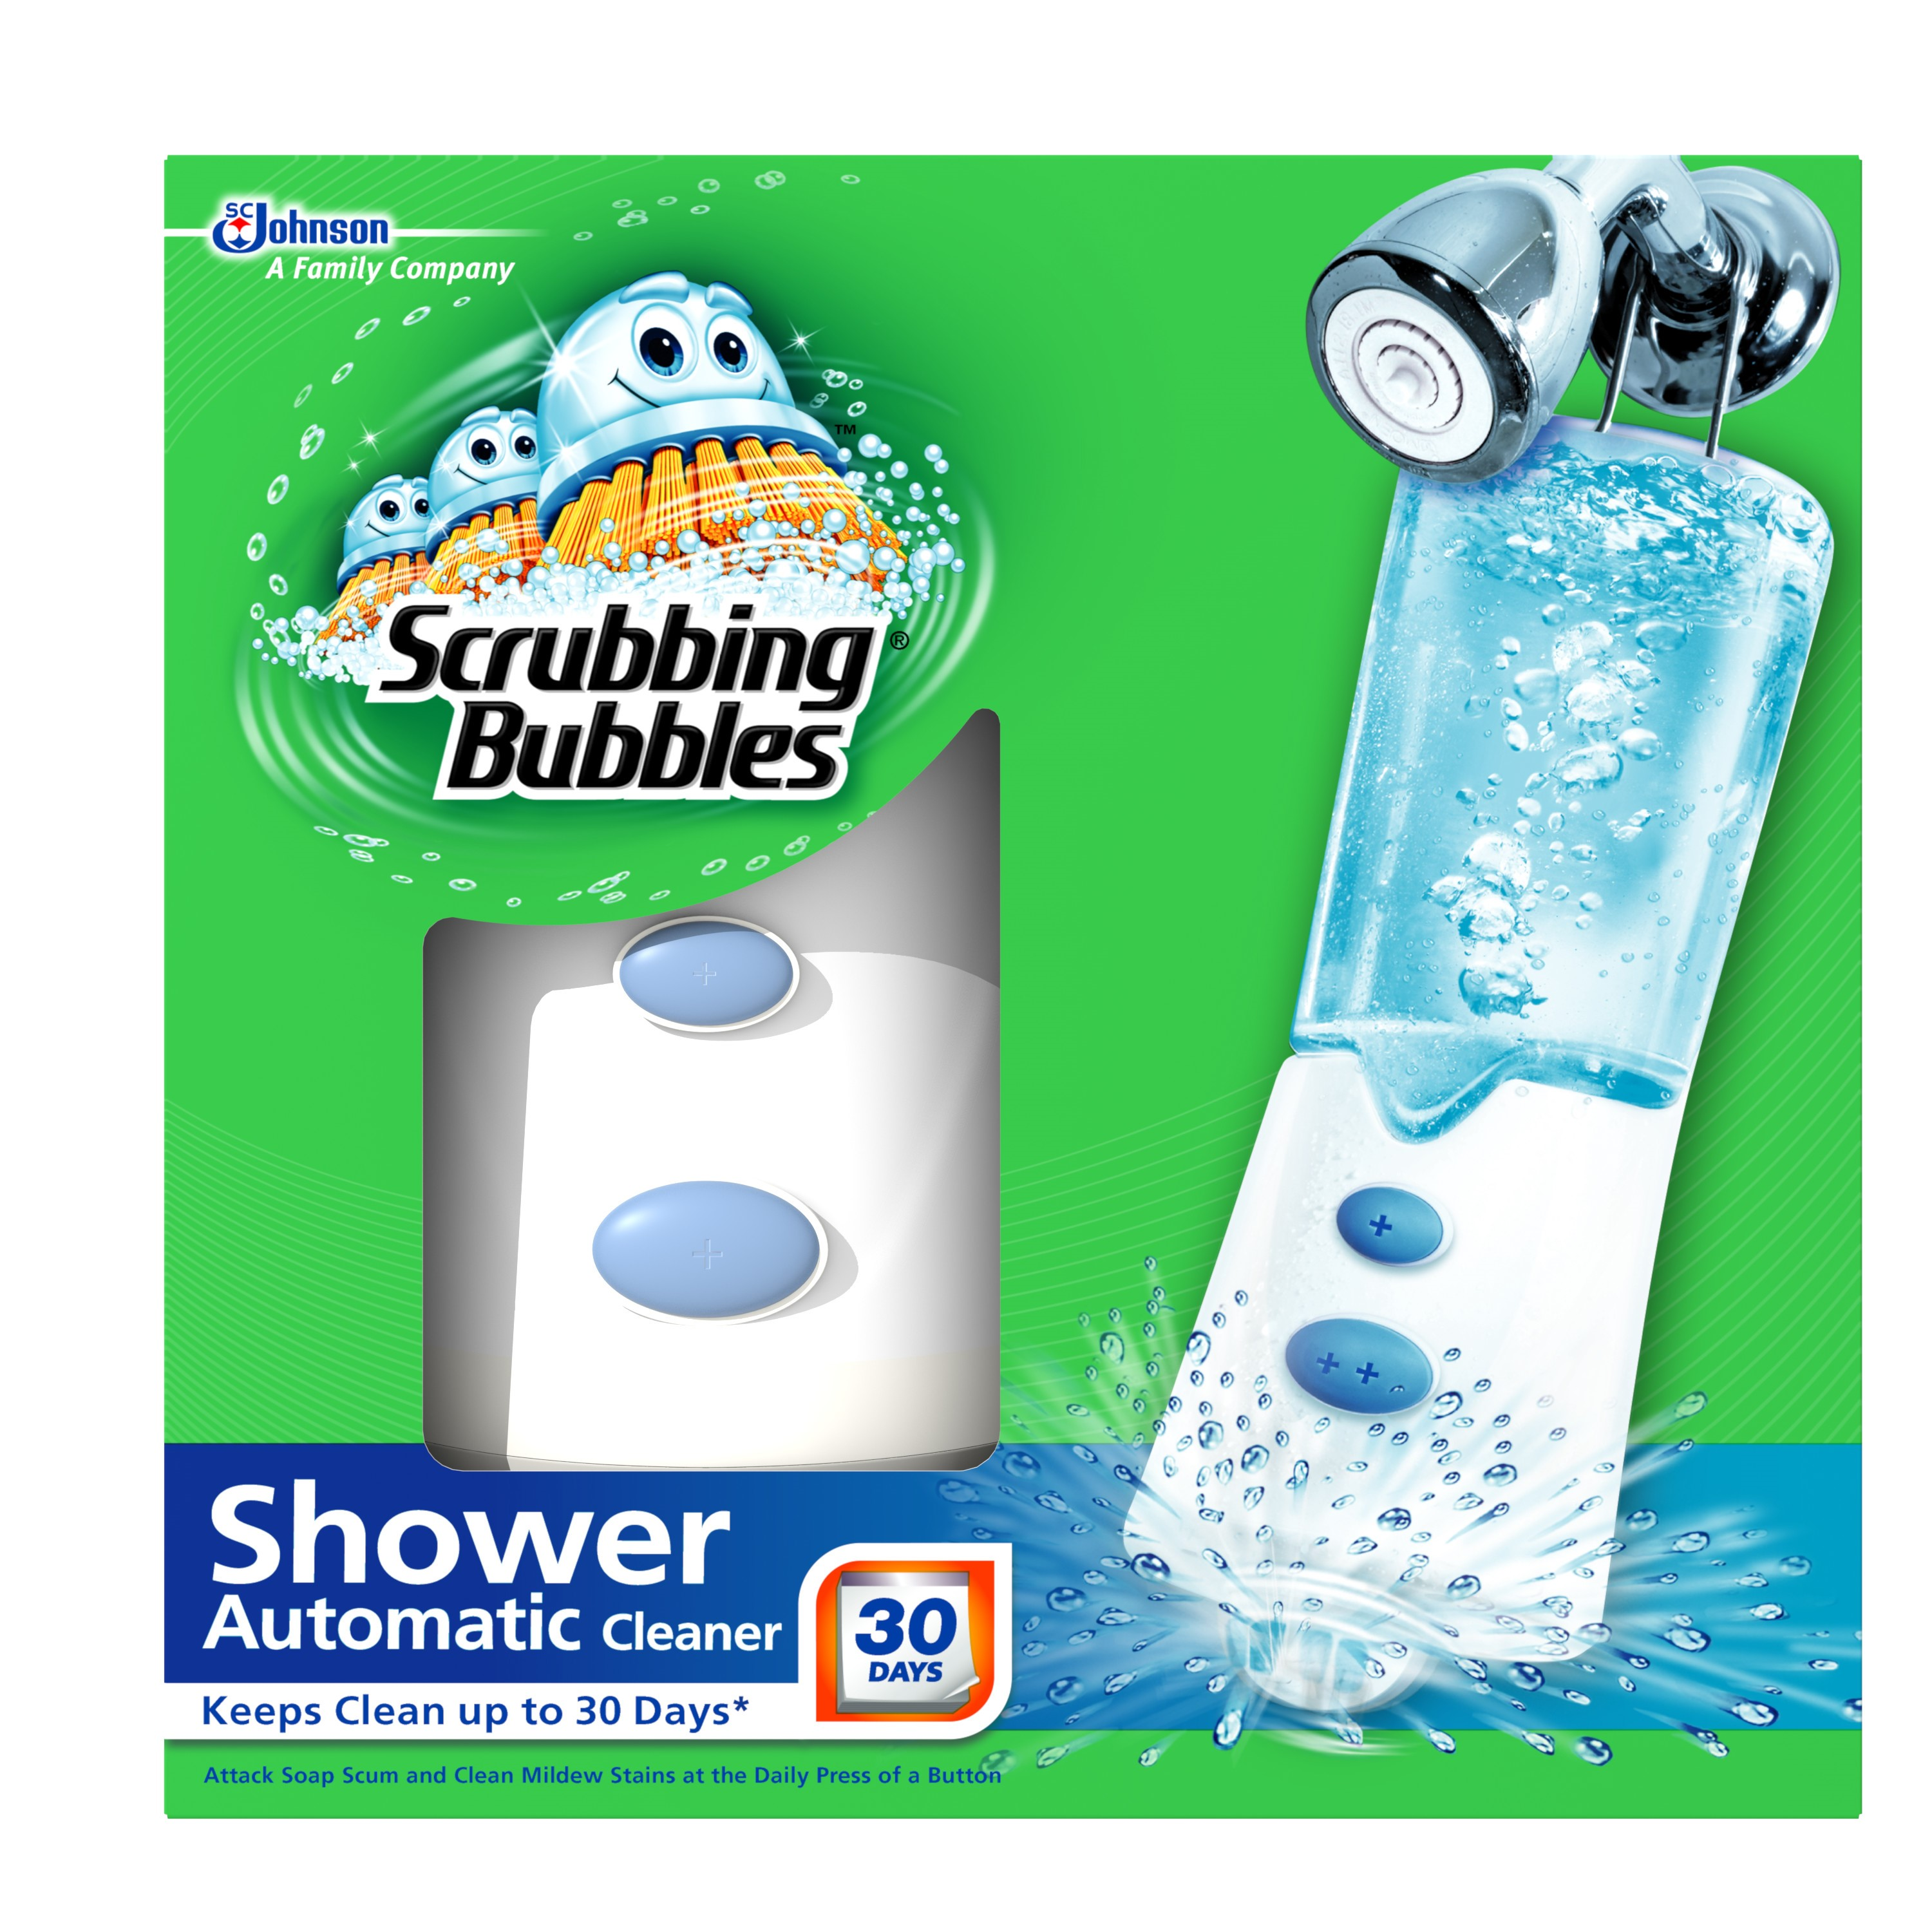 Scrubbing Bubbles Bathroom Cleaner Automatic Shower Cleaner KIT w 2 solutions